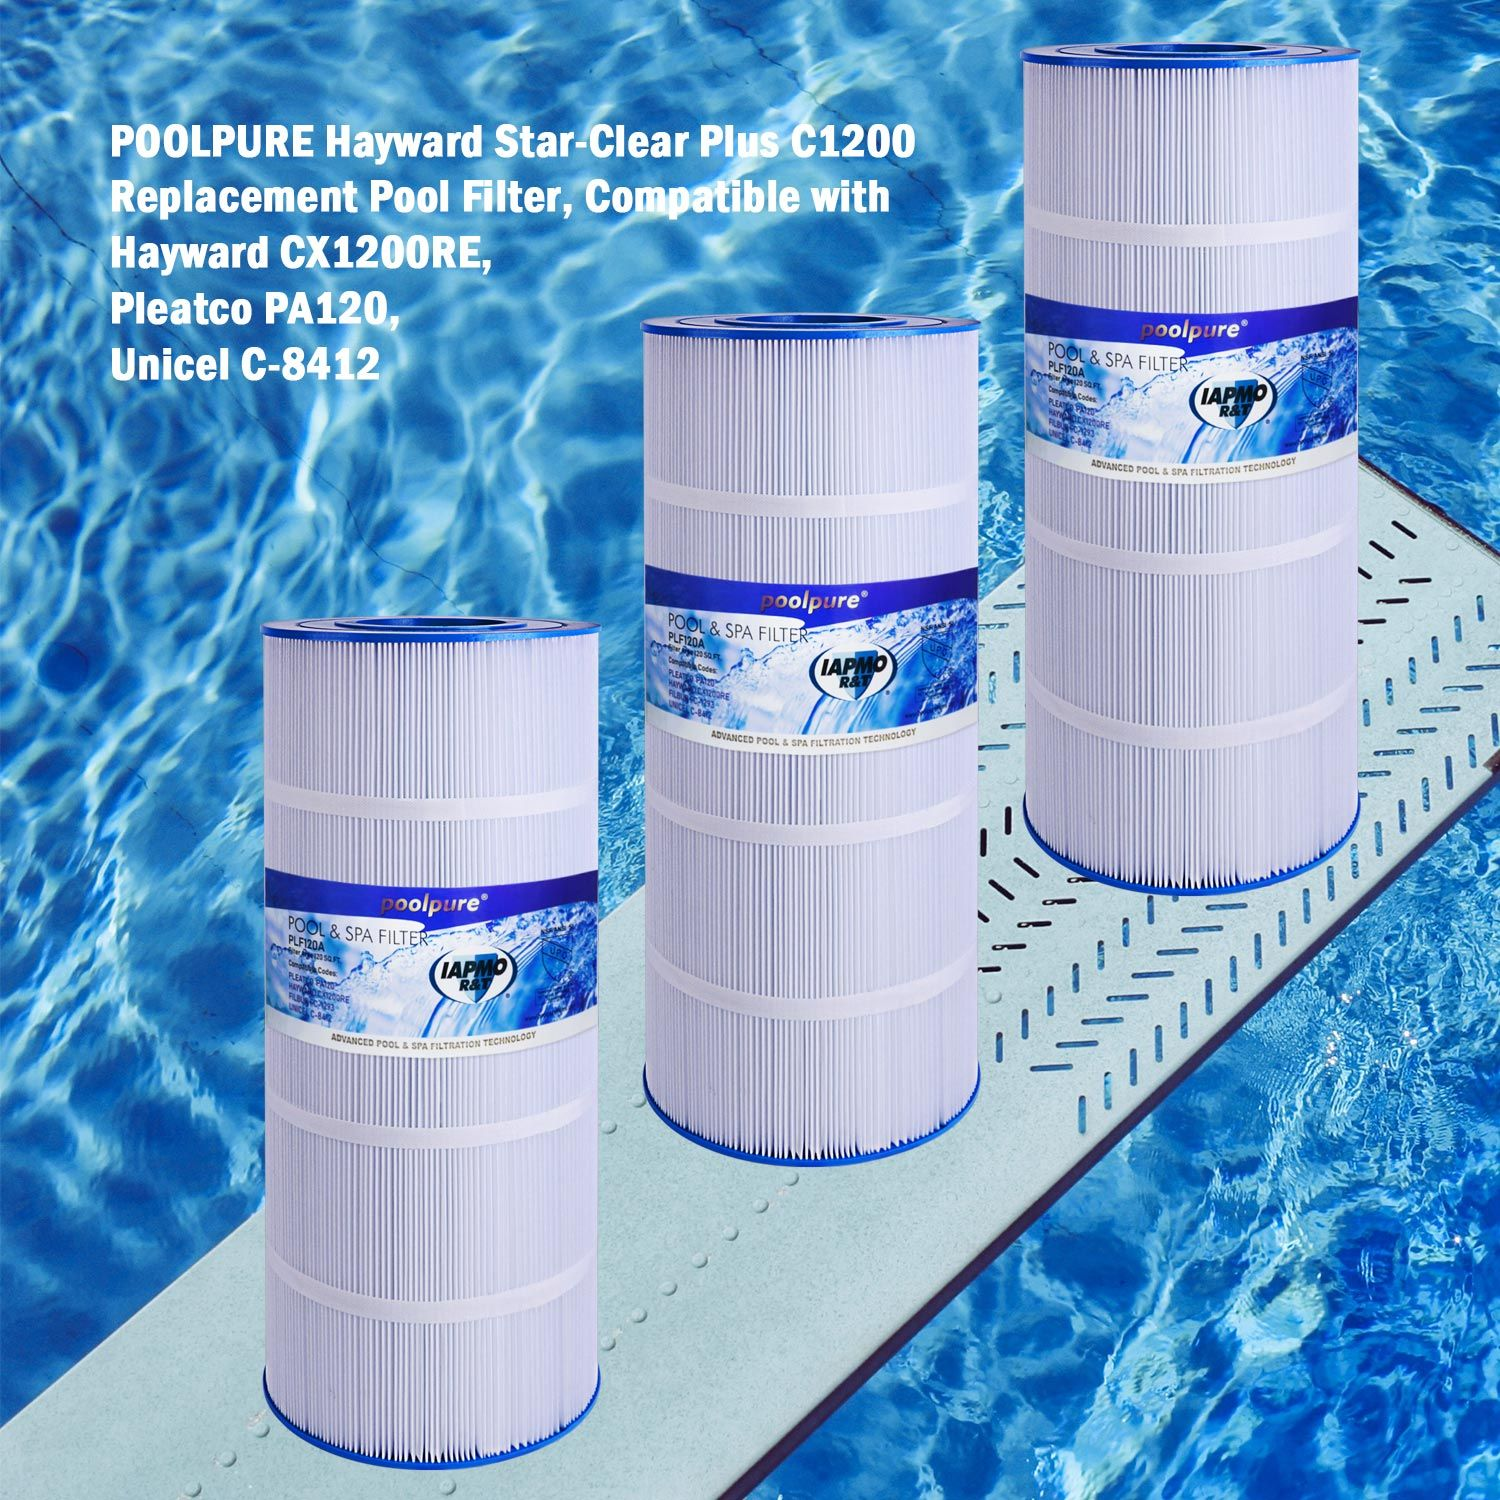 Poolpure Pool Filter Makes Water In The Pool Cleaner When Water